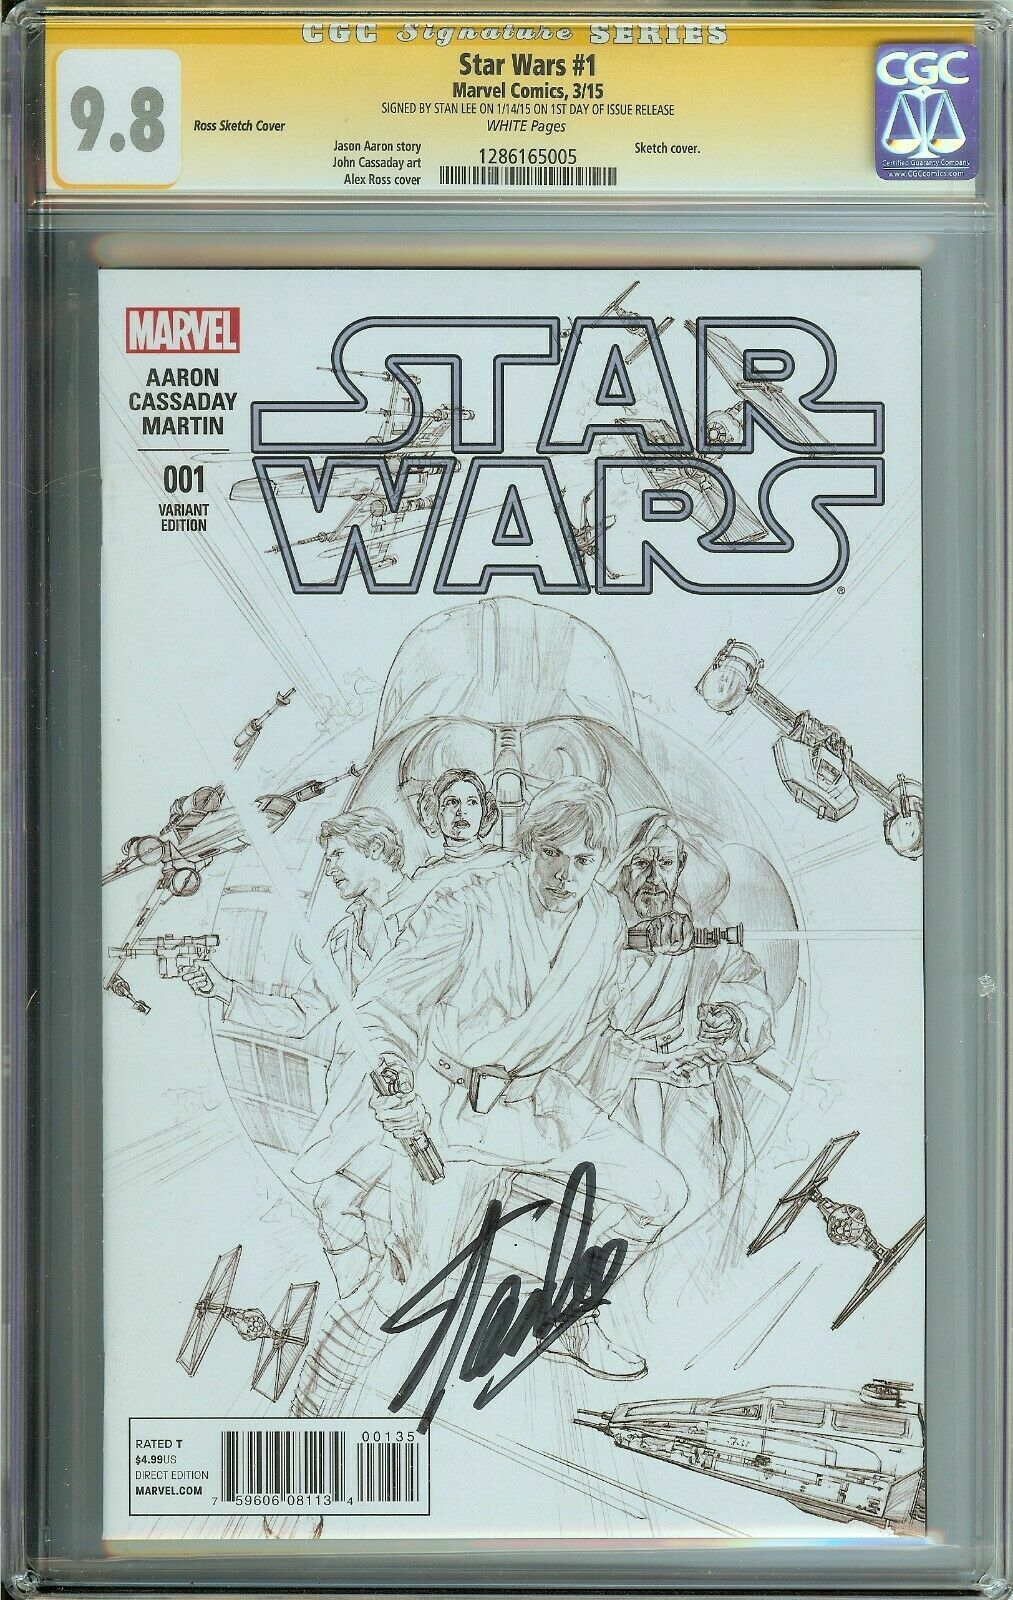 SIGNED BY STAN LEE SS STAR WARS CGC 9.8 WHITE PAGES Alex ROSS SKETCH COVER